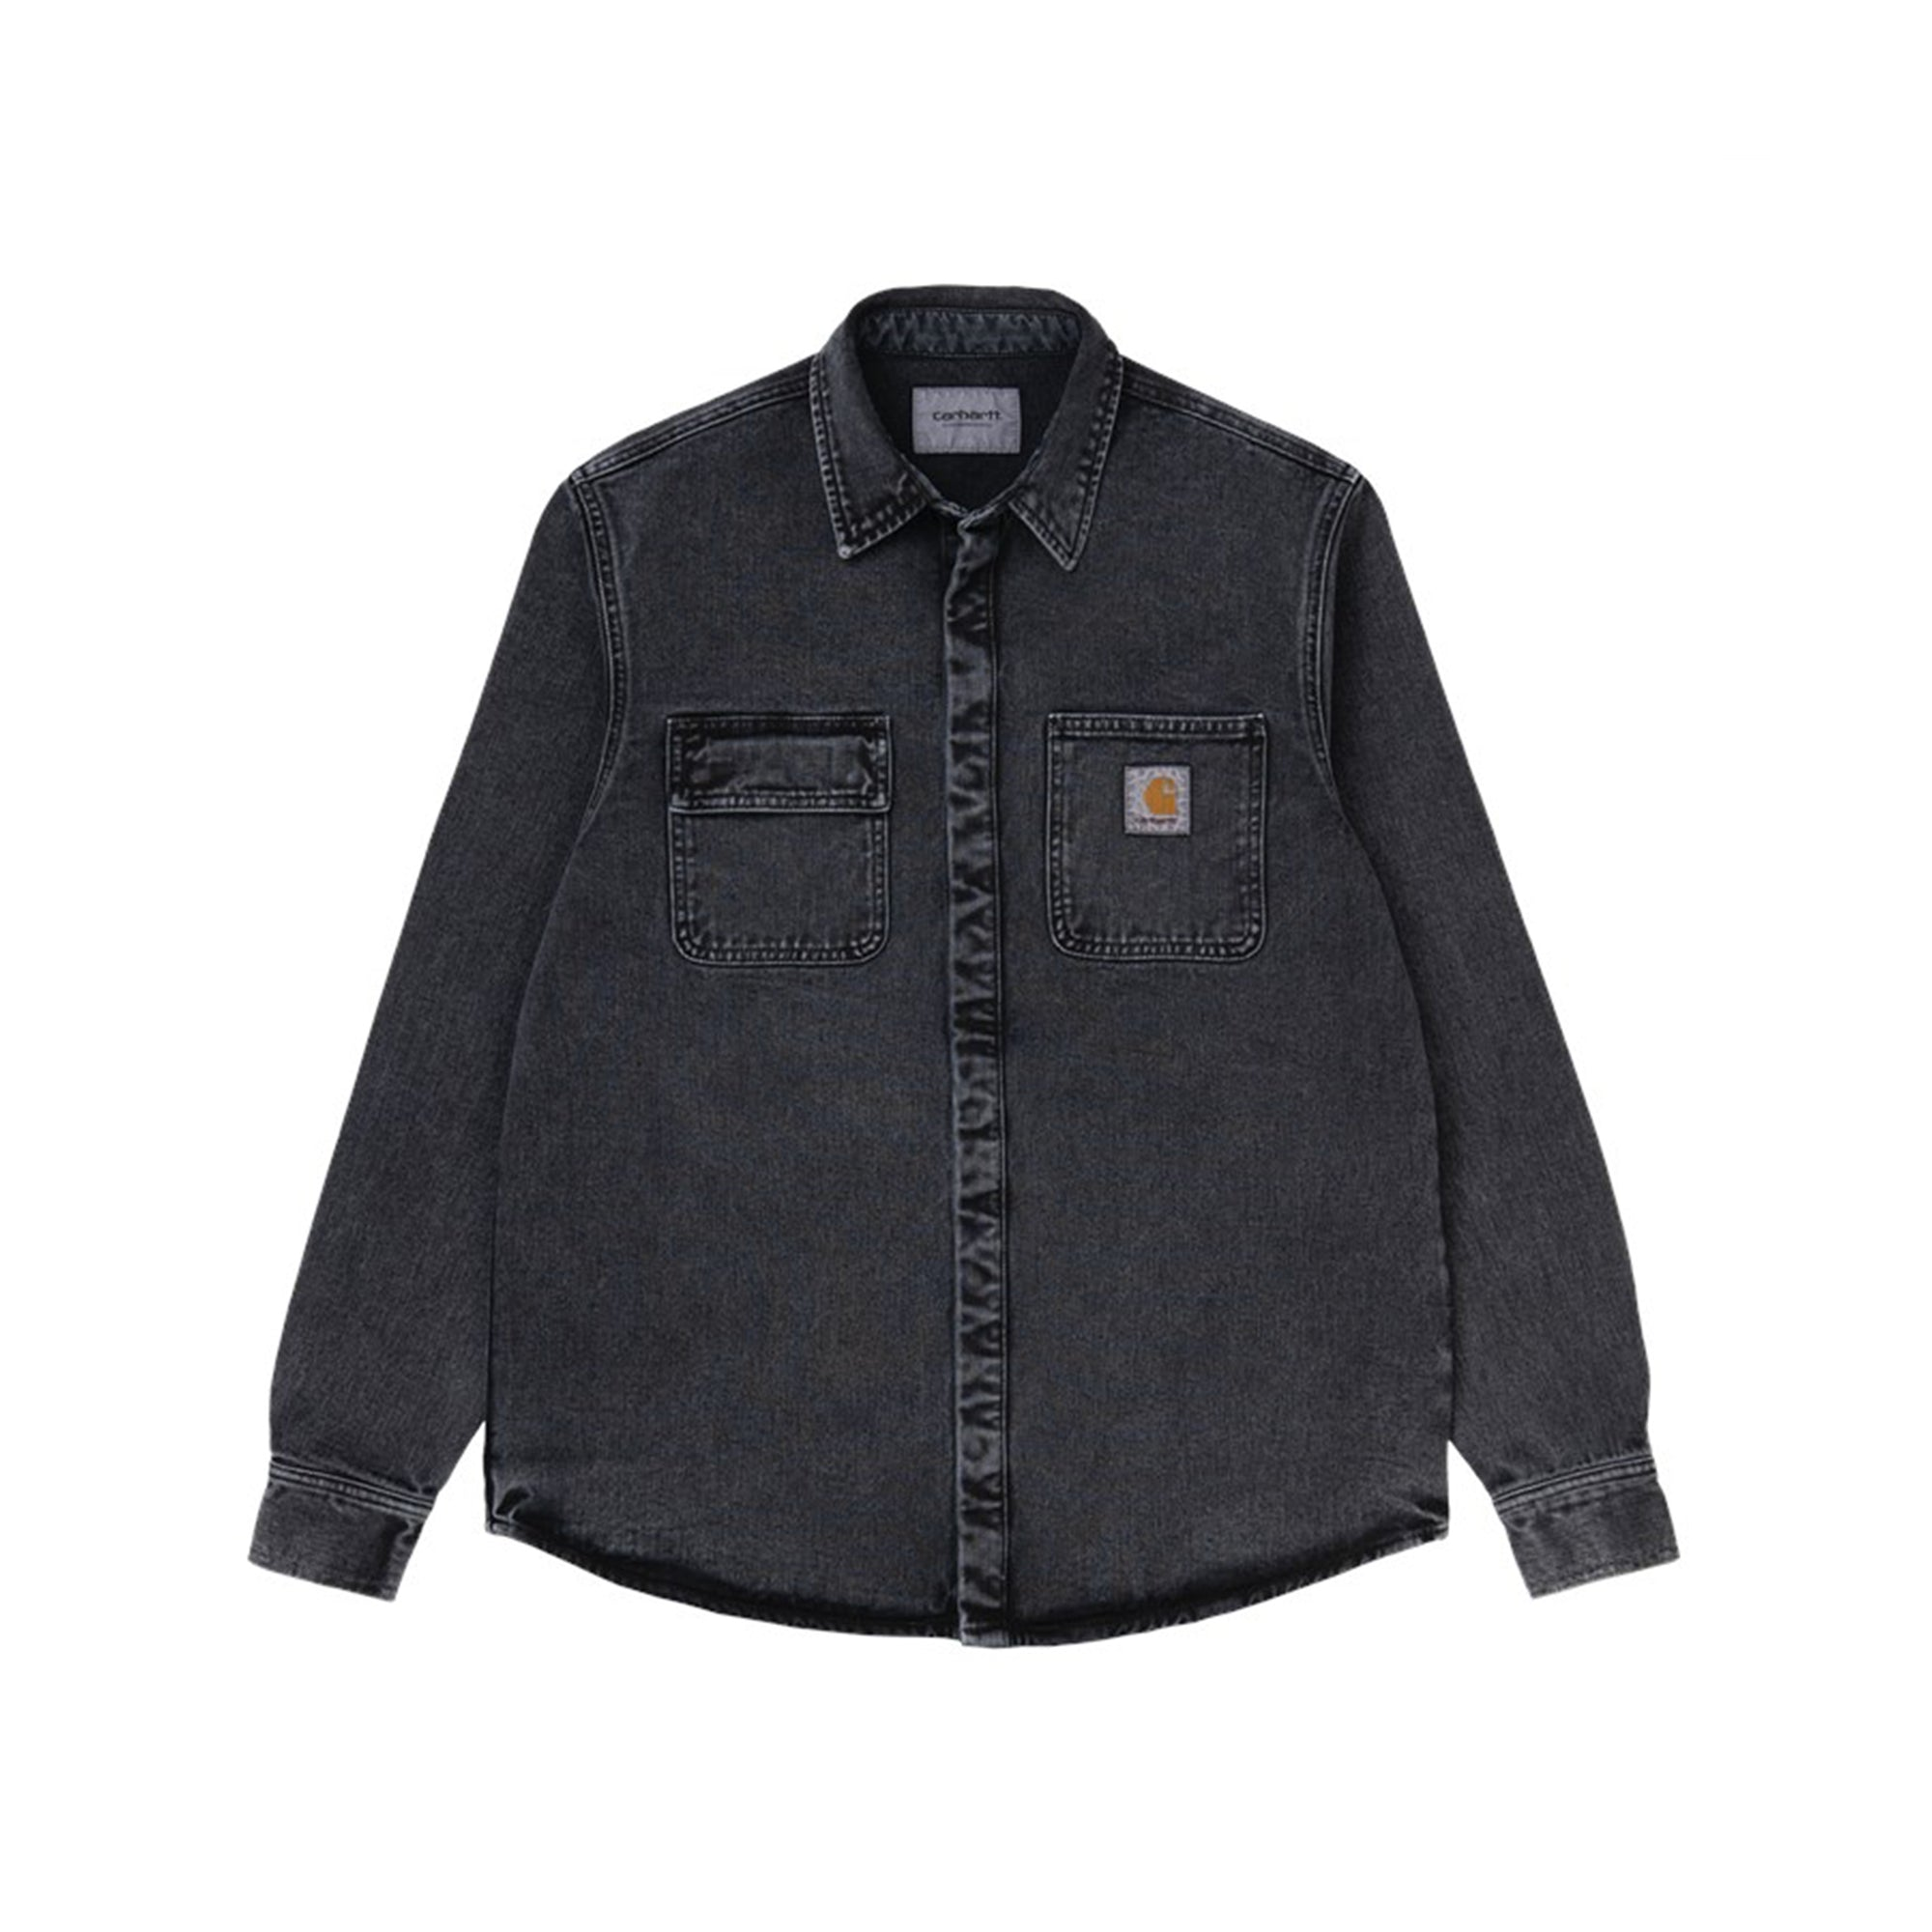 Carhartt WIP Salinac Shirt Jac: Black Worn Washed - The Union Project